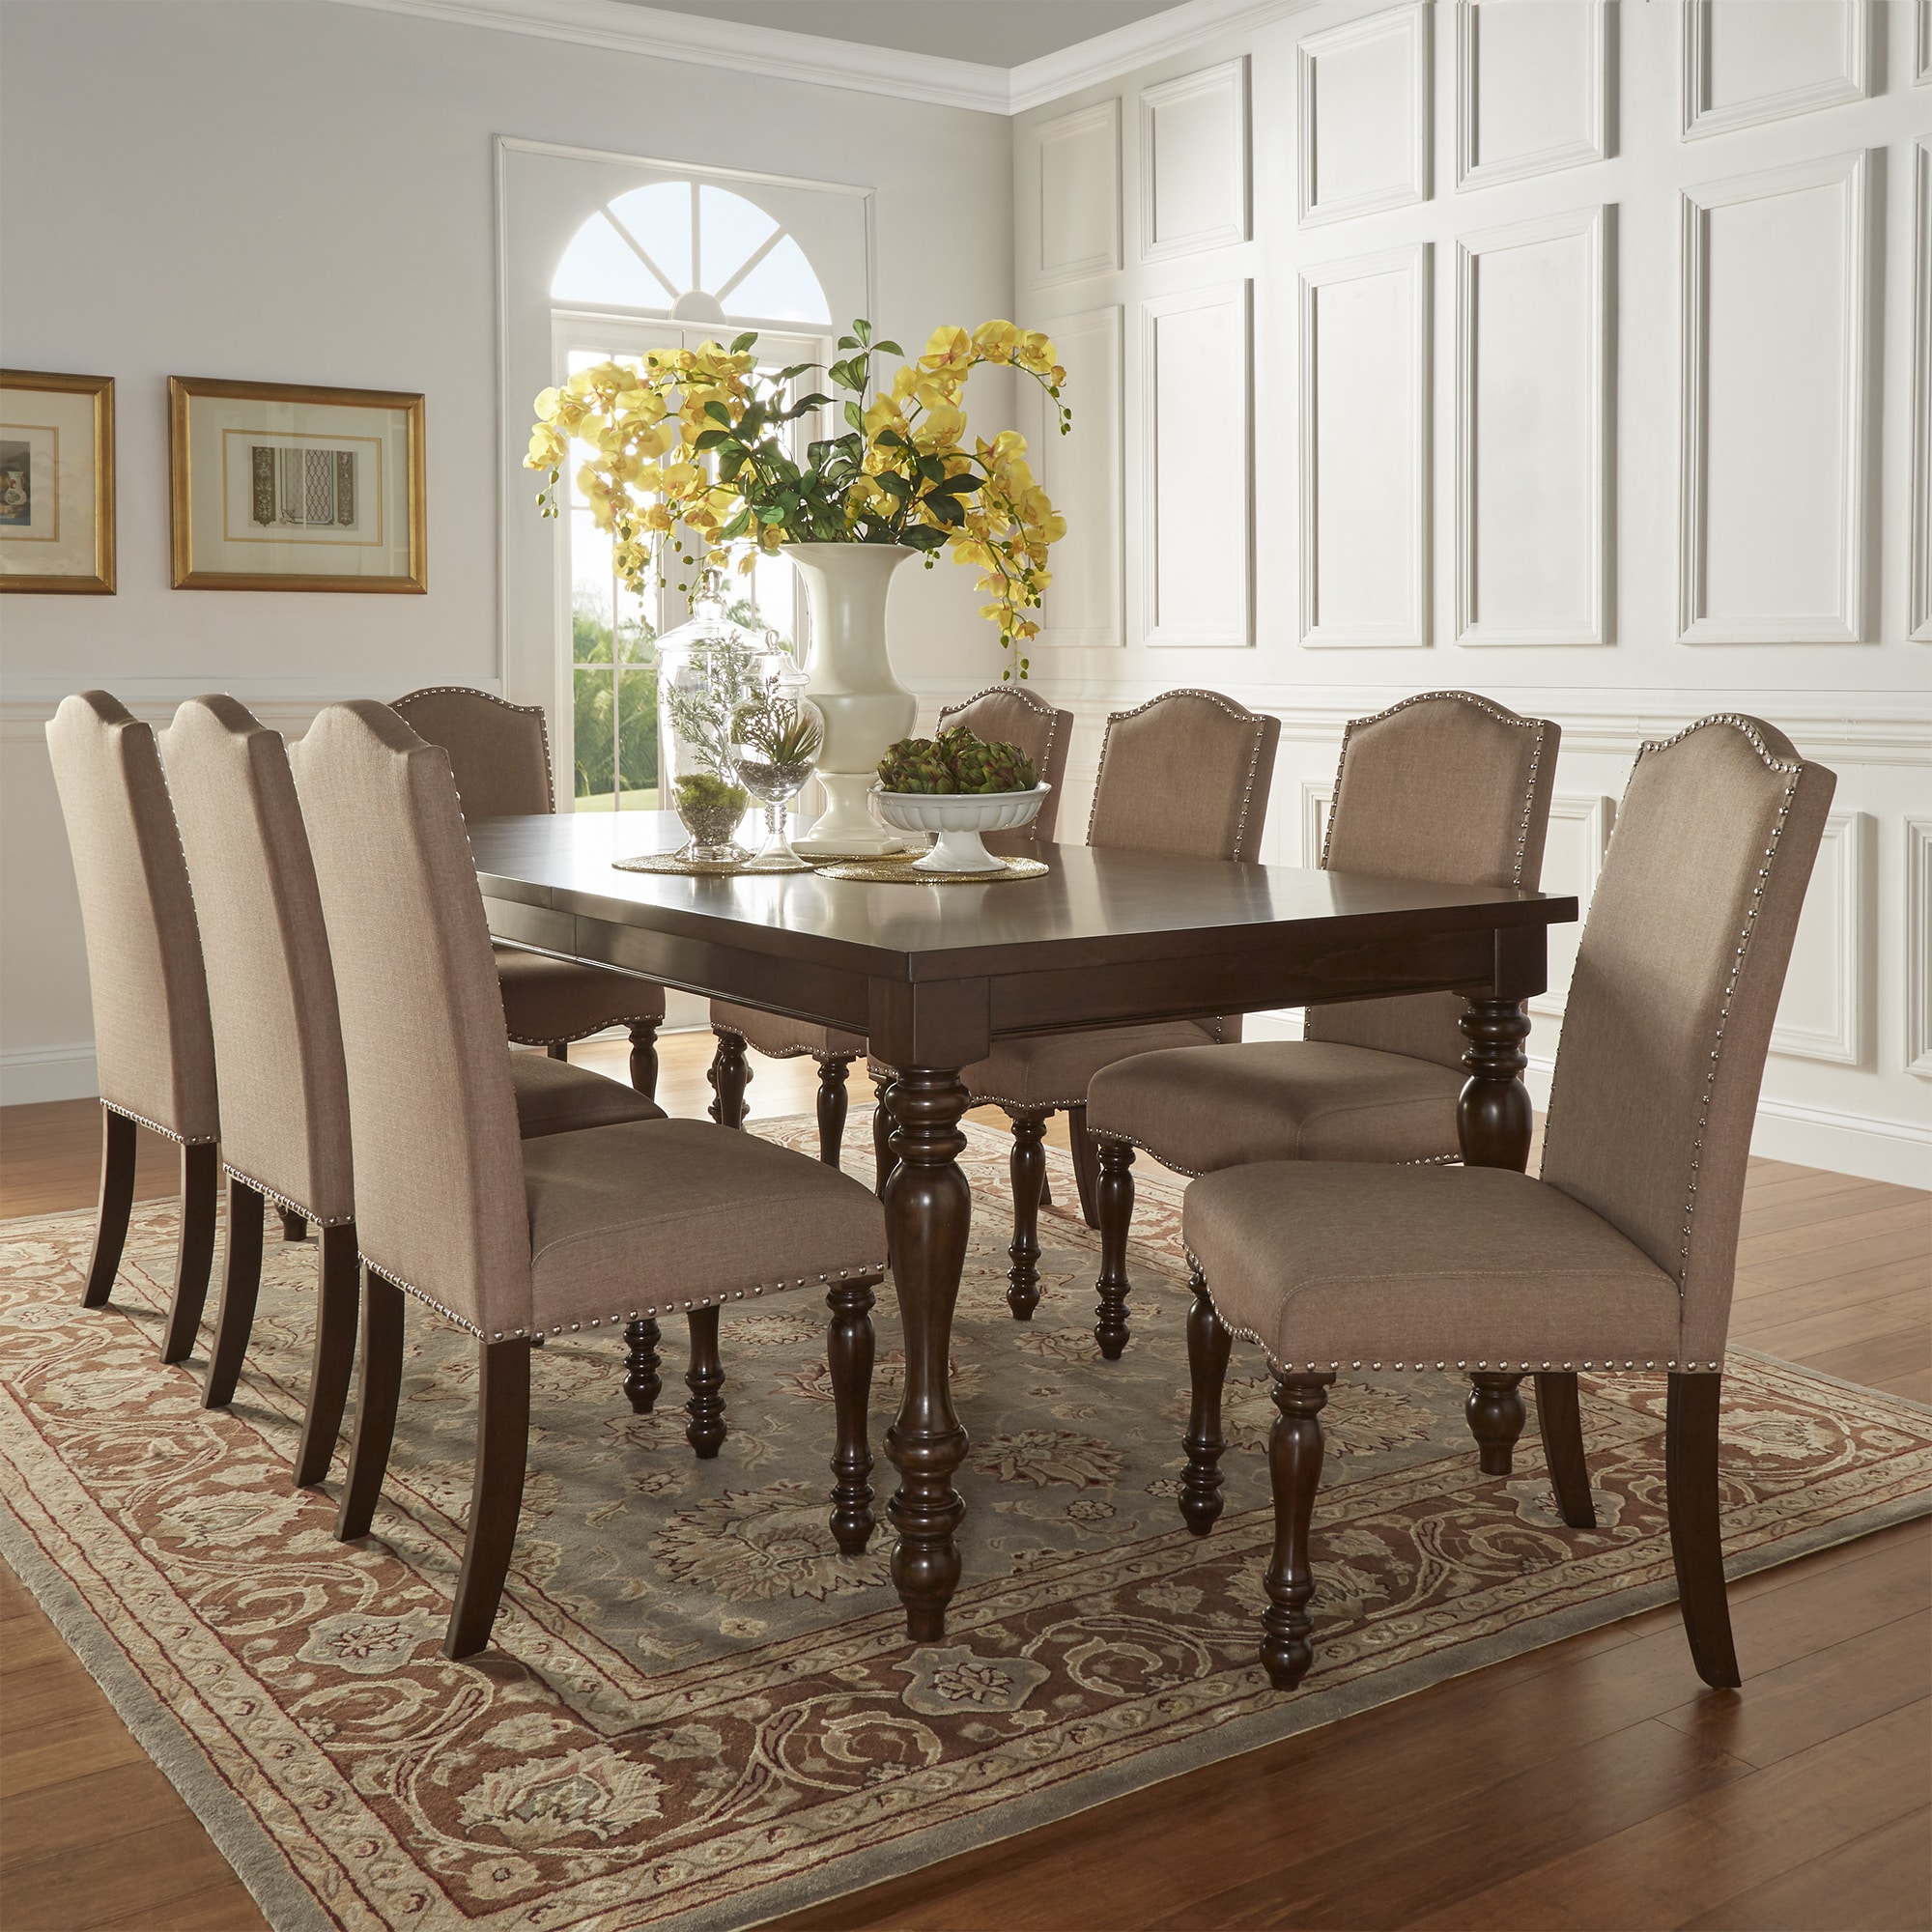 Attirant Shop Parisian Rectangular Extending Dining Table By INSPIRE Q Classic   On  Sale   Free Shipping Today   Overstock.com   12615615